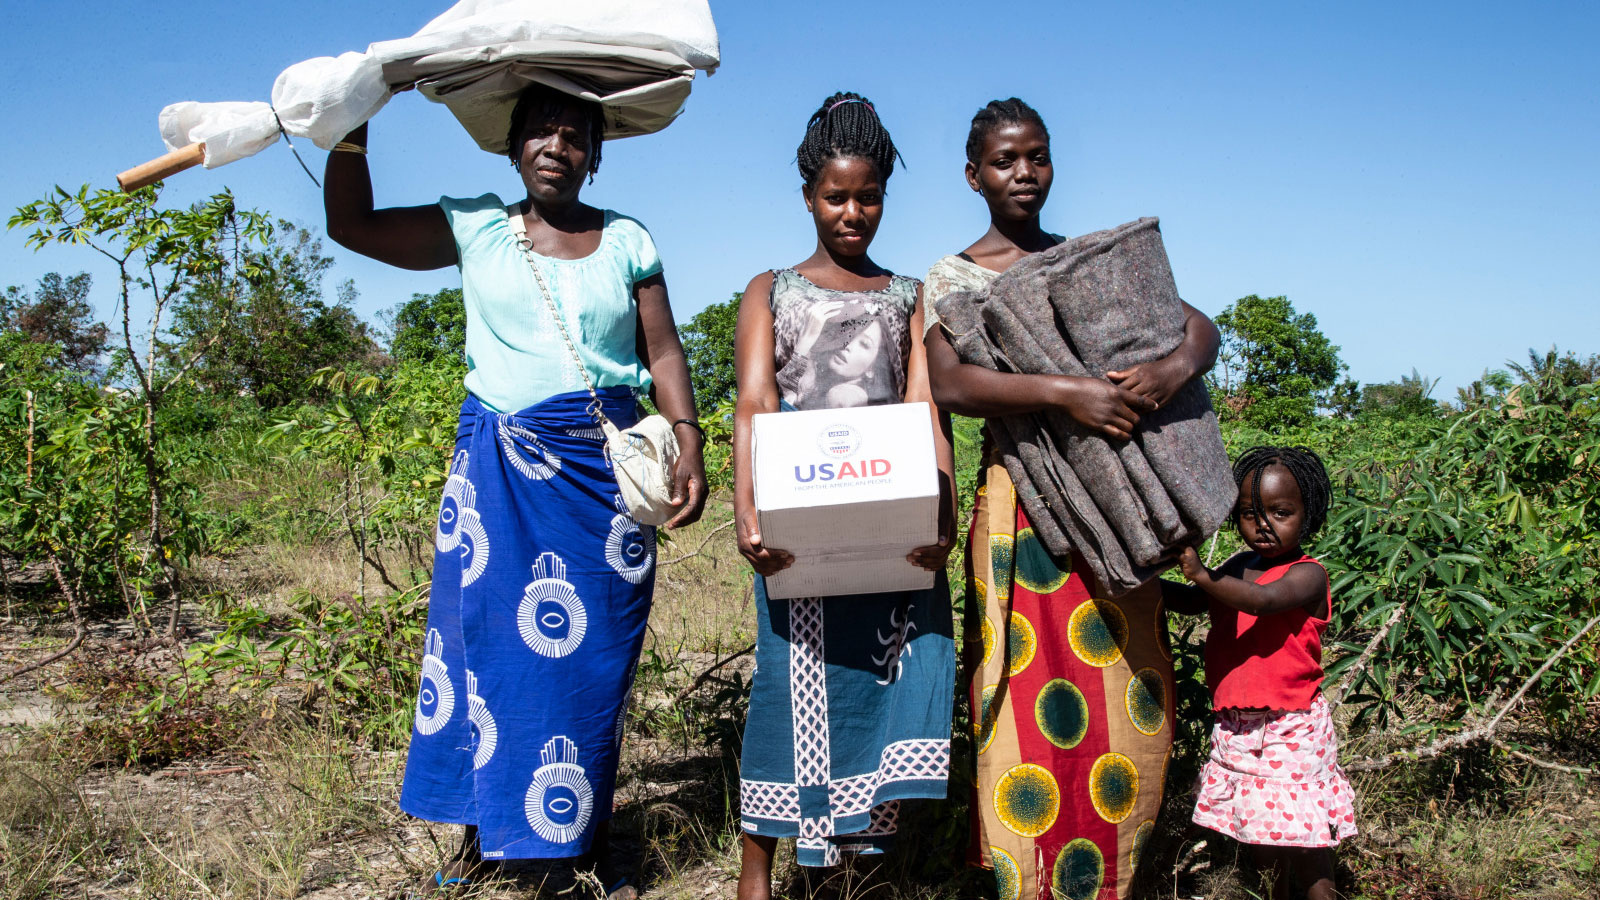 A-family-receives-humanitarian-aid-following-Cyclone-Idai-in-Mozambique